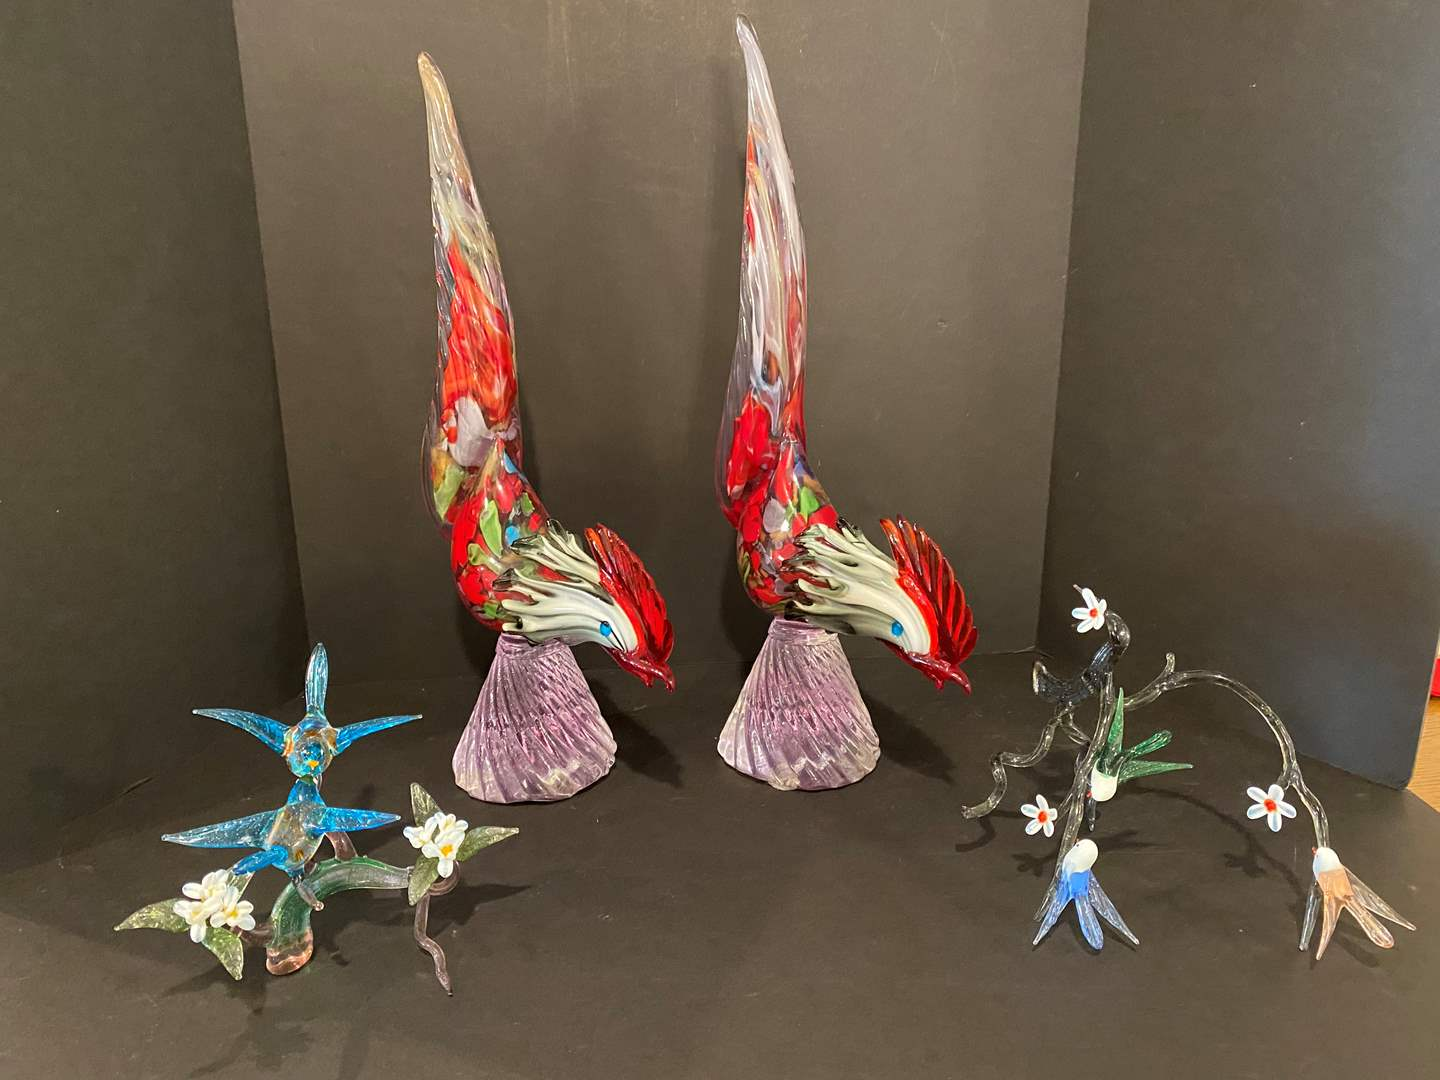 Lot # 182 - Two Heavy Glass Roosters, Two Pieces of Glass Bird Art (main image)